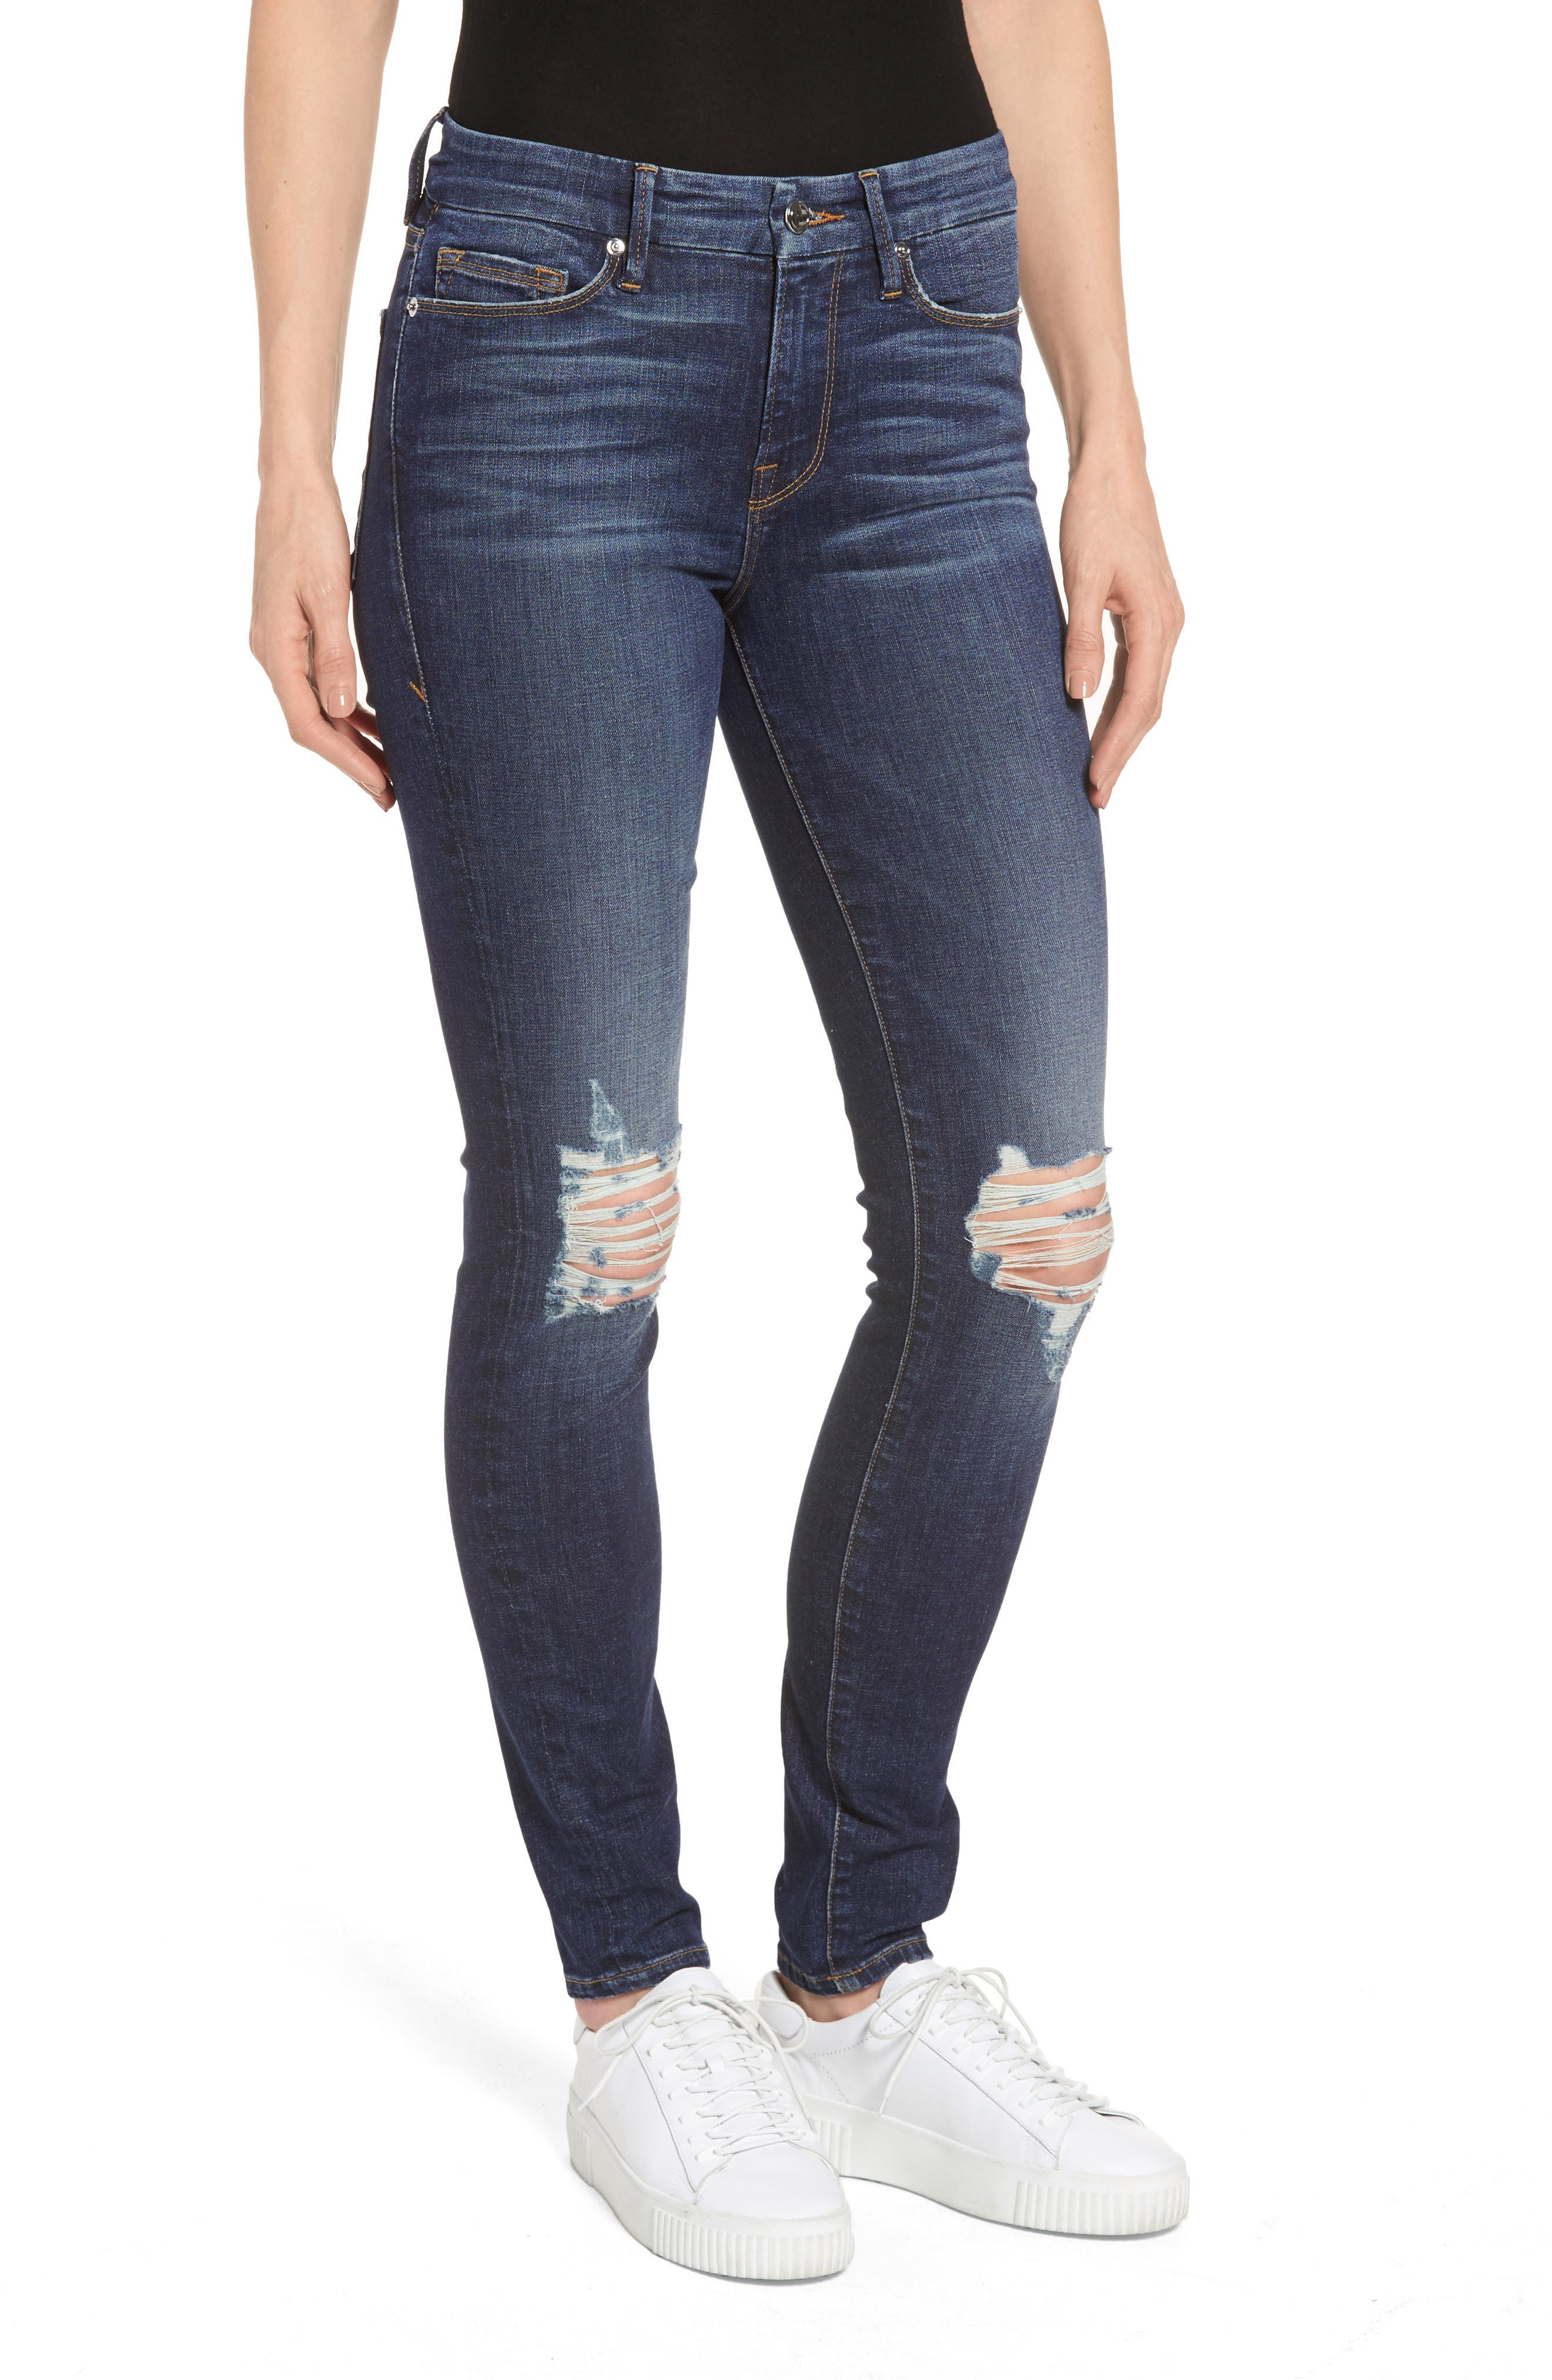 Good Legs Ripped Skinny Jeans,                         Main,                         color, 401